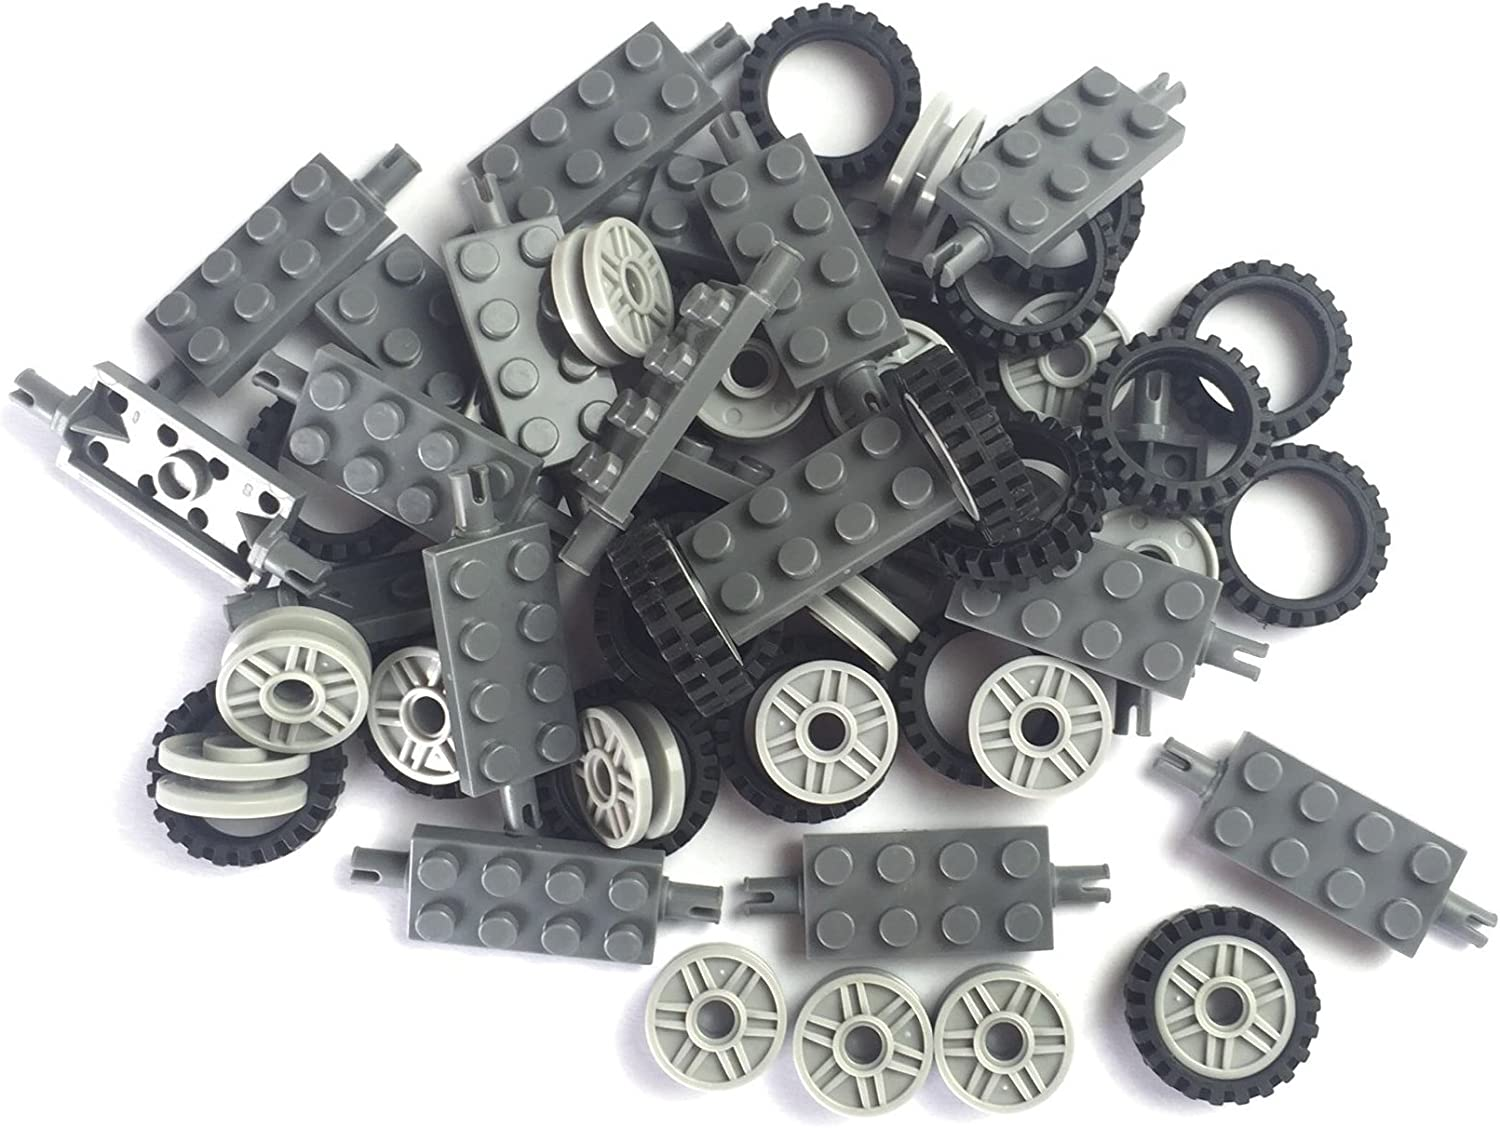 24 mm outlet X 7 Tire Wheel and Axles Pieces Sales for sale Building Long -50 Brick